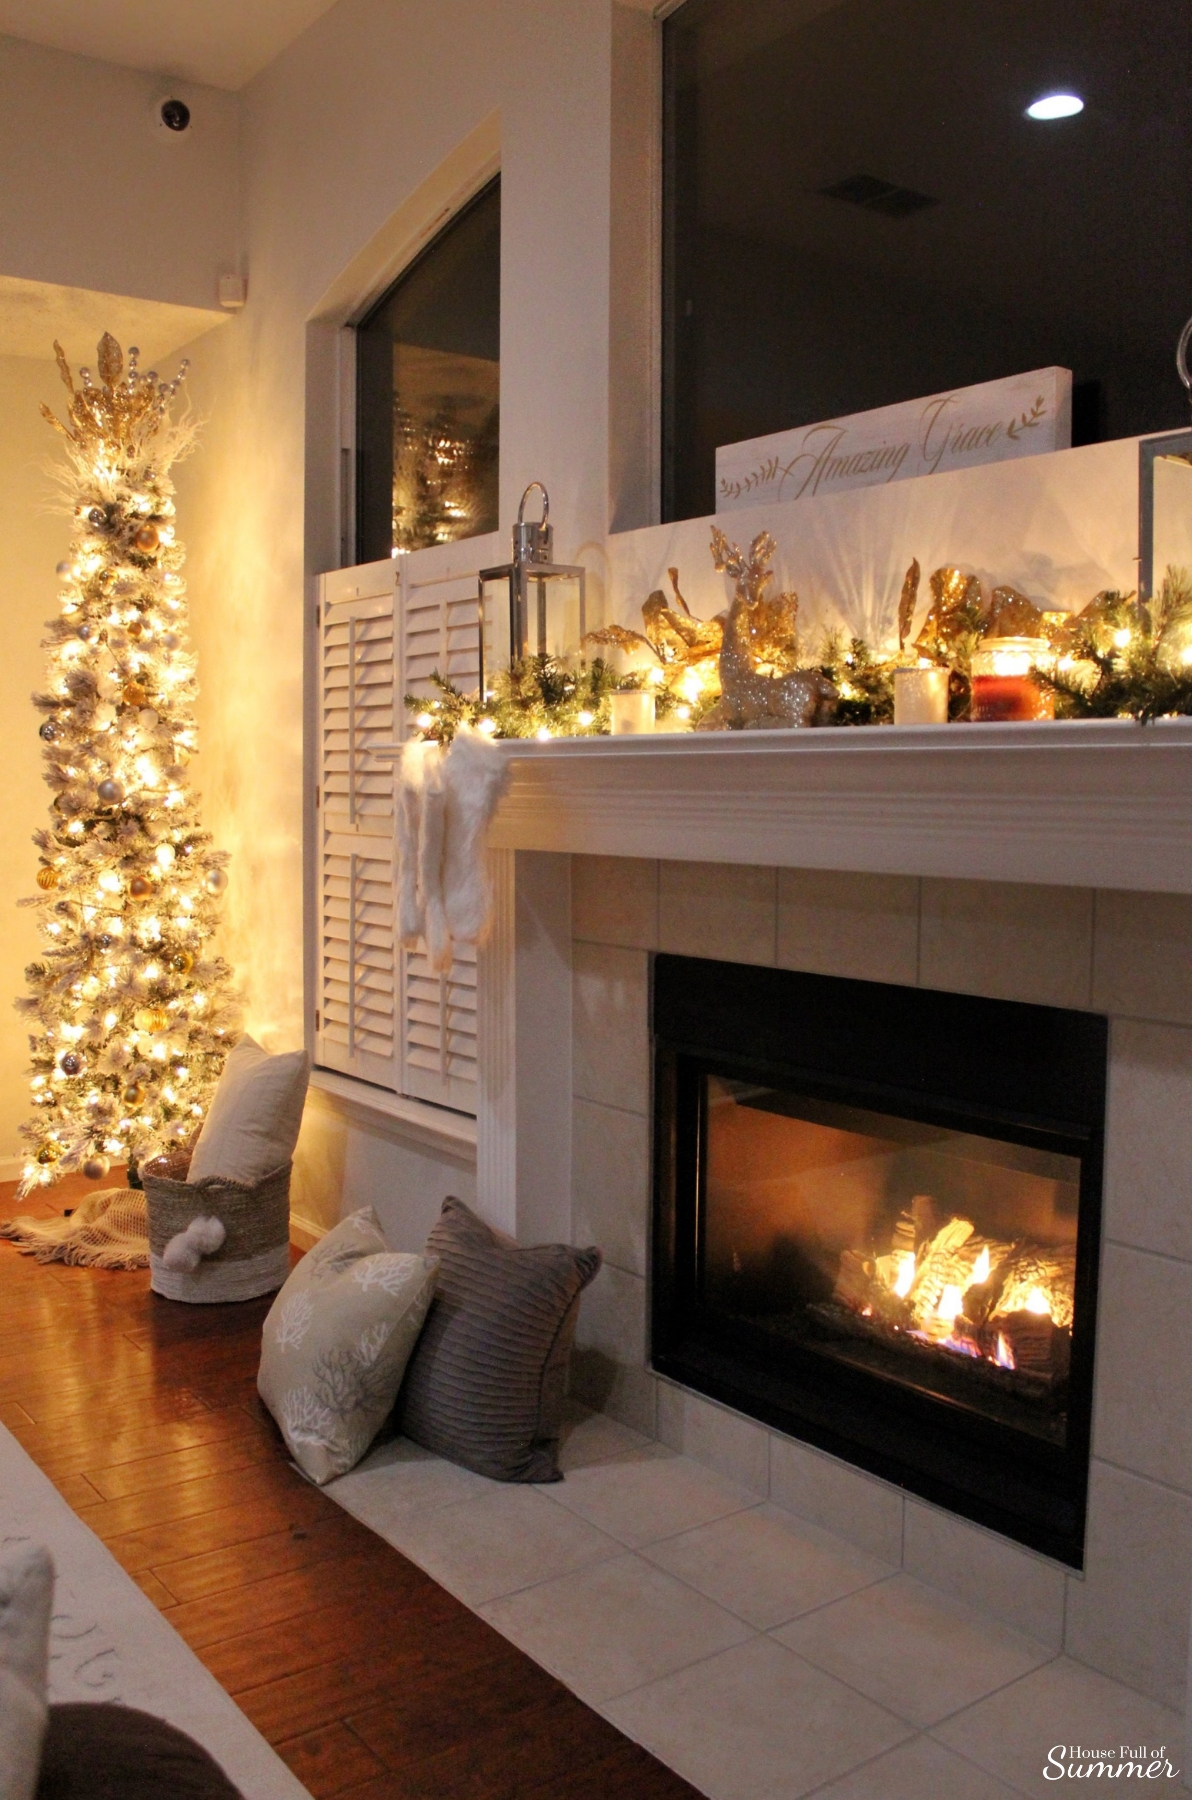 Cozy Christmas Nights By The Fireplace House Full Of